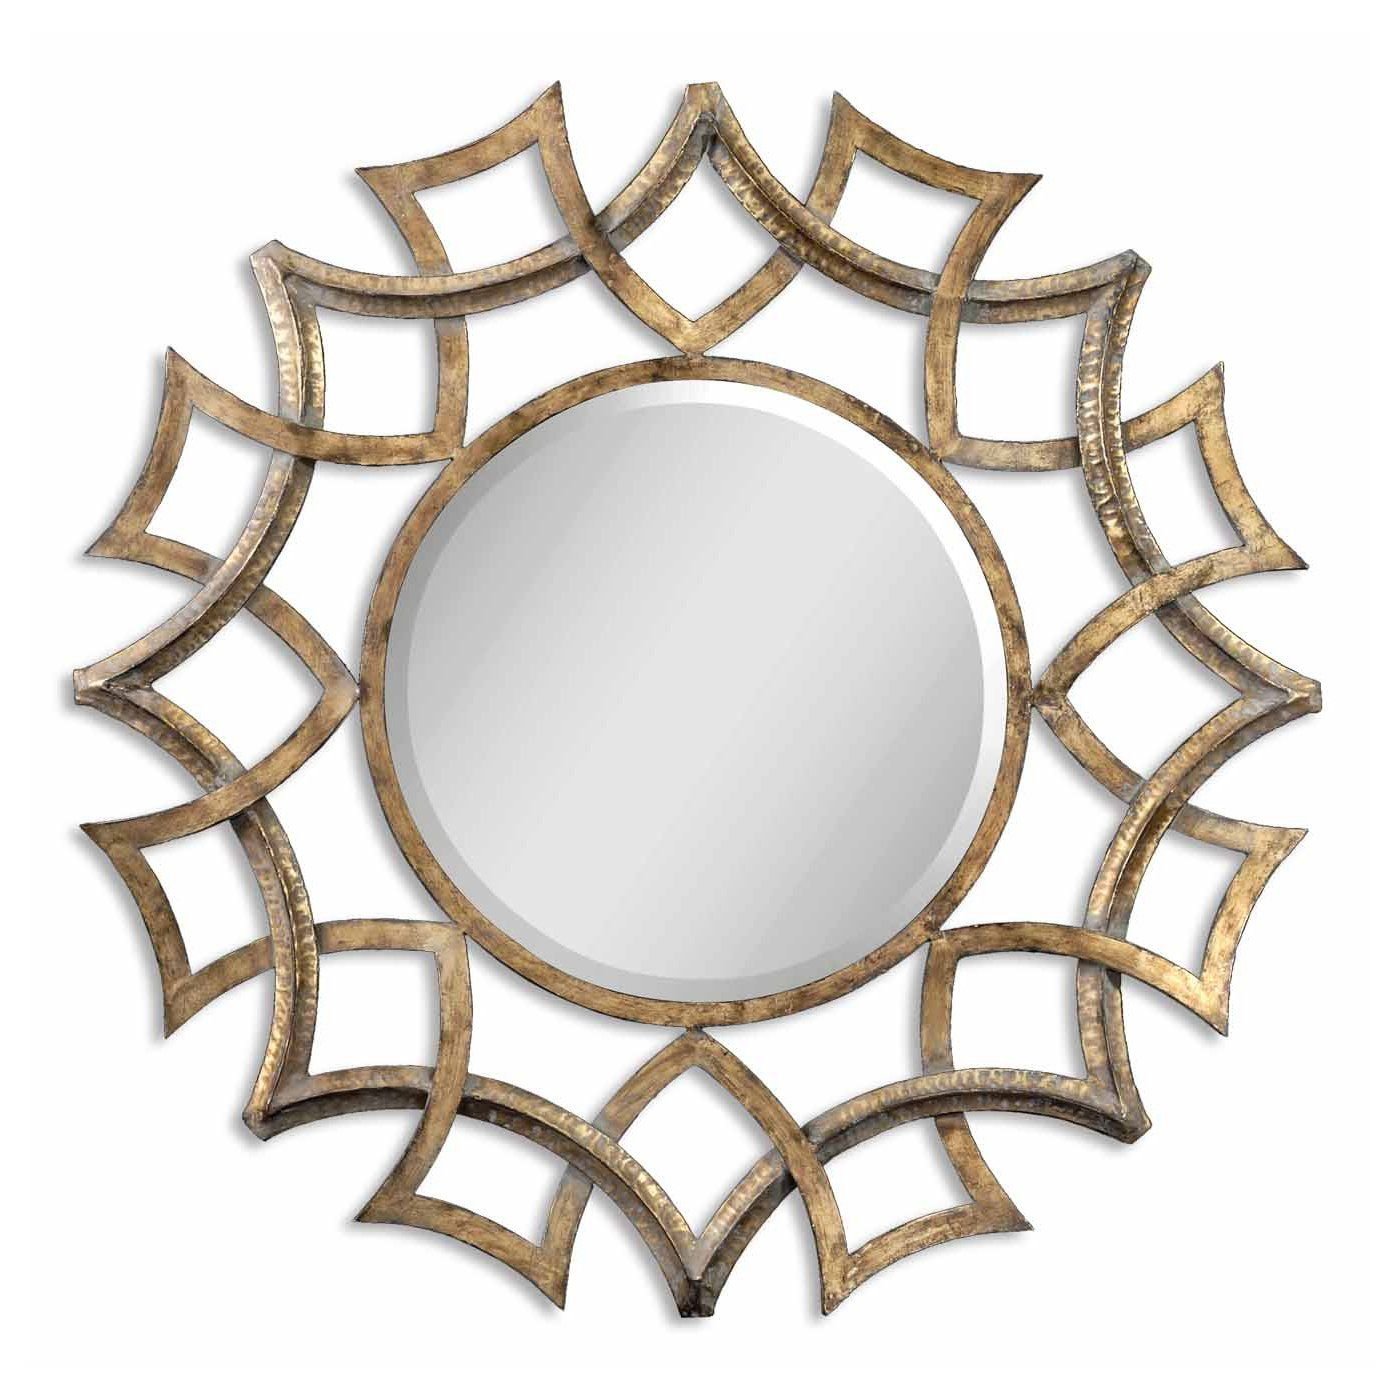 uk mirrors small tiles decor sets for mirror houston round tx large wall decorative bathrooms